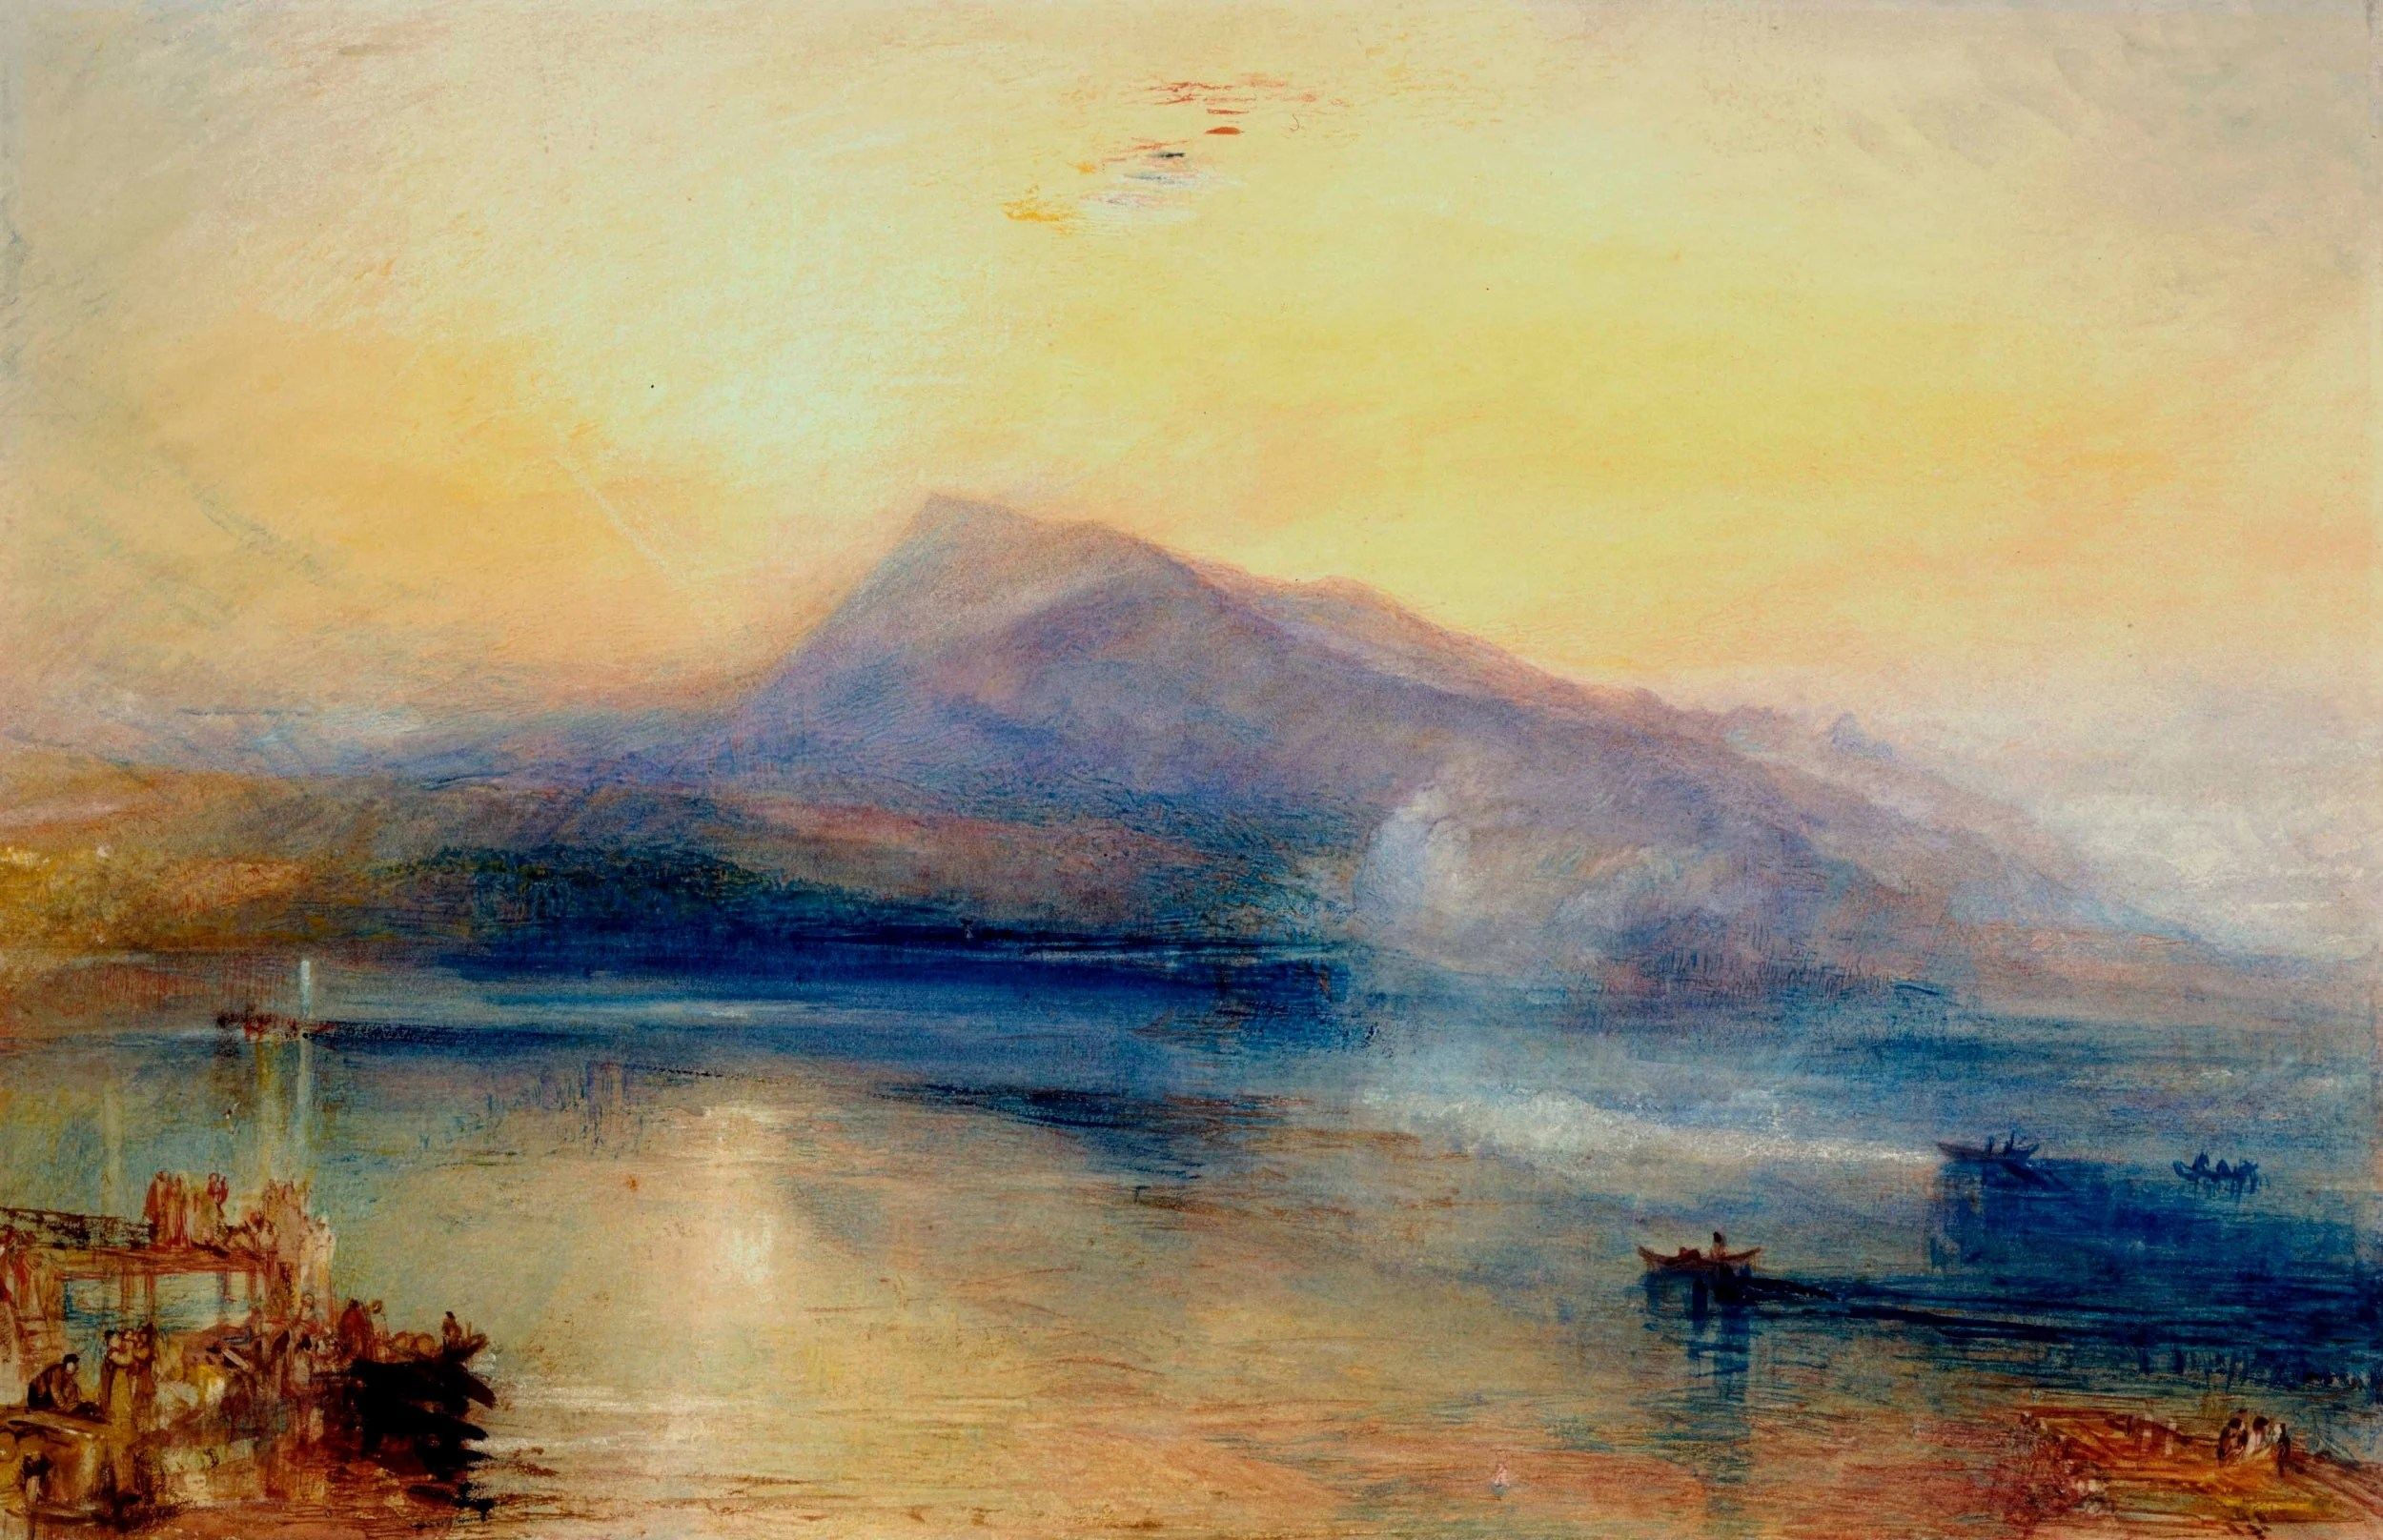 turner masterpiece worth 10